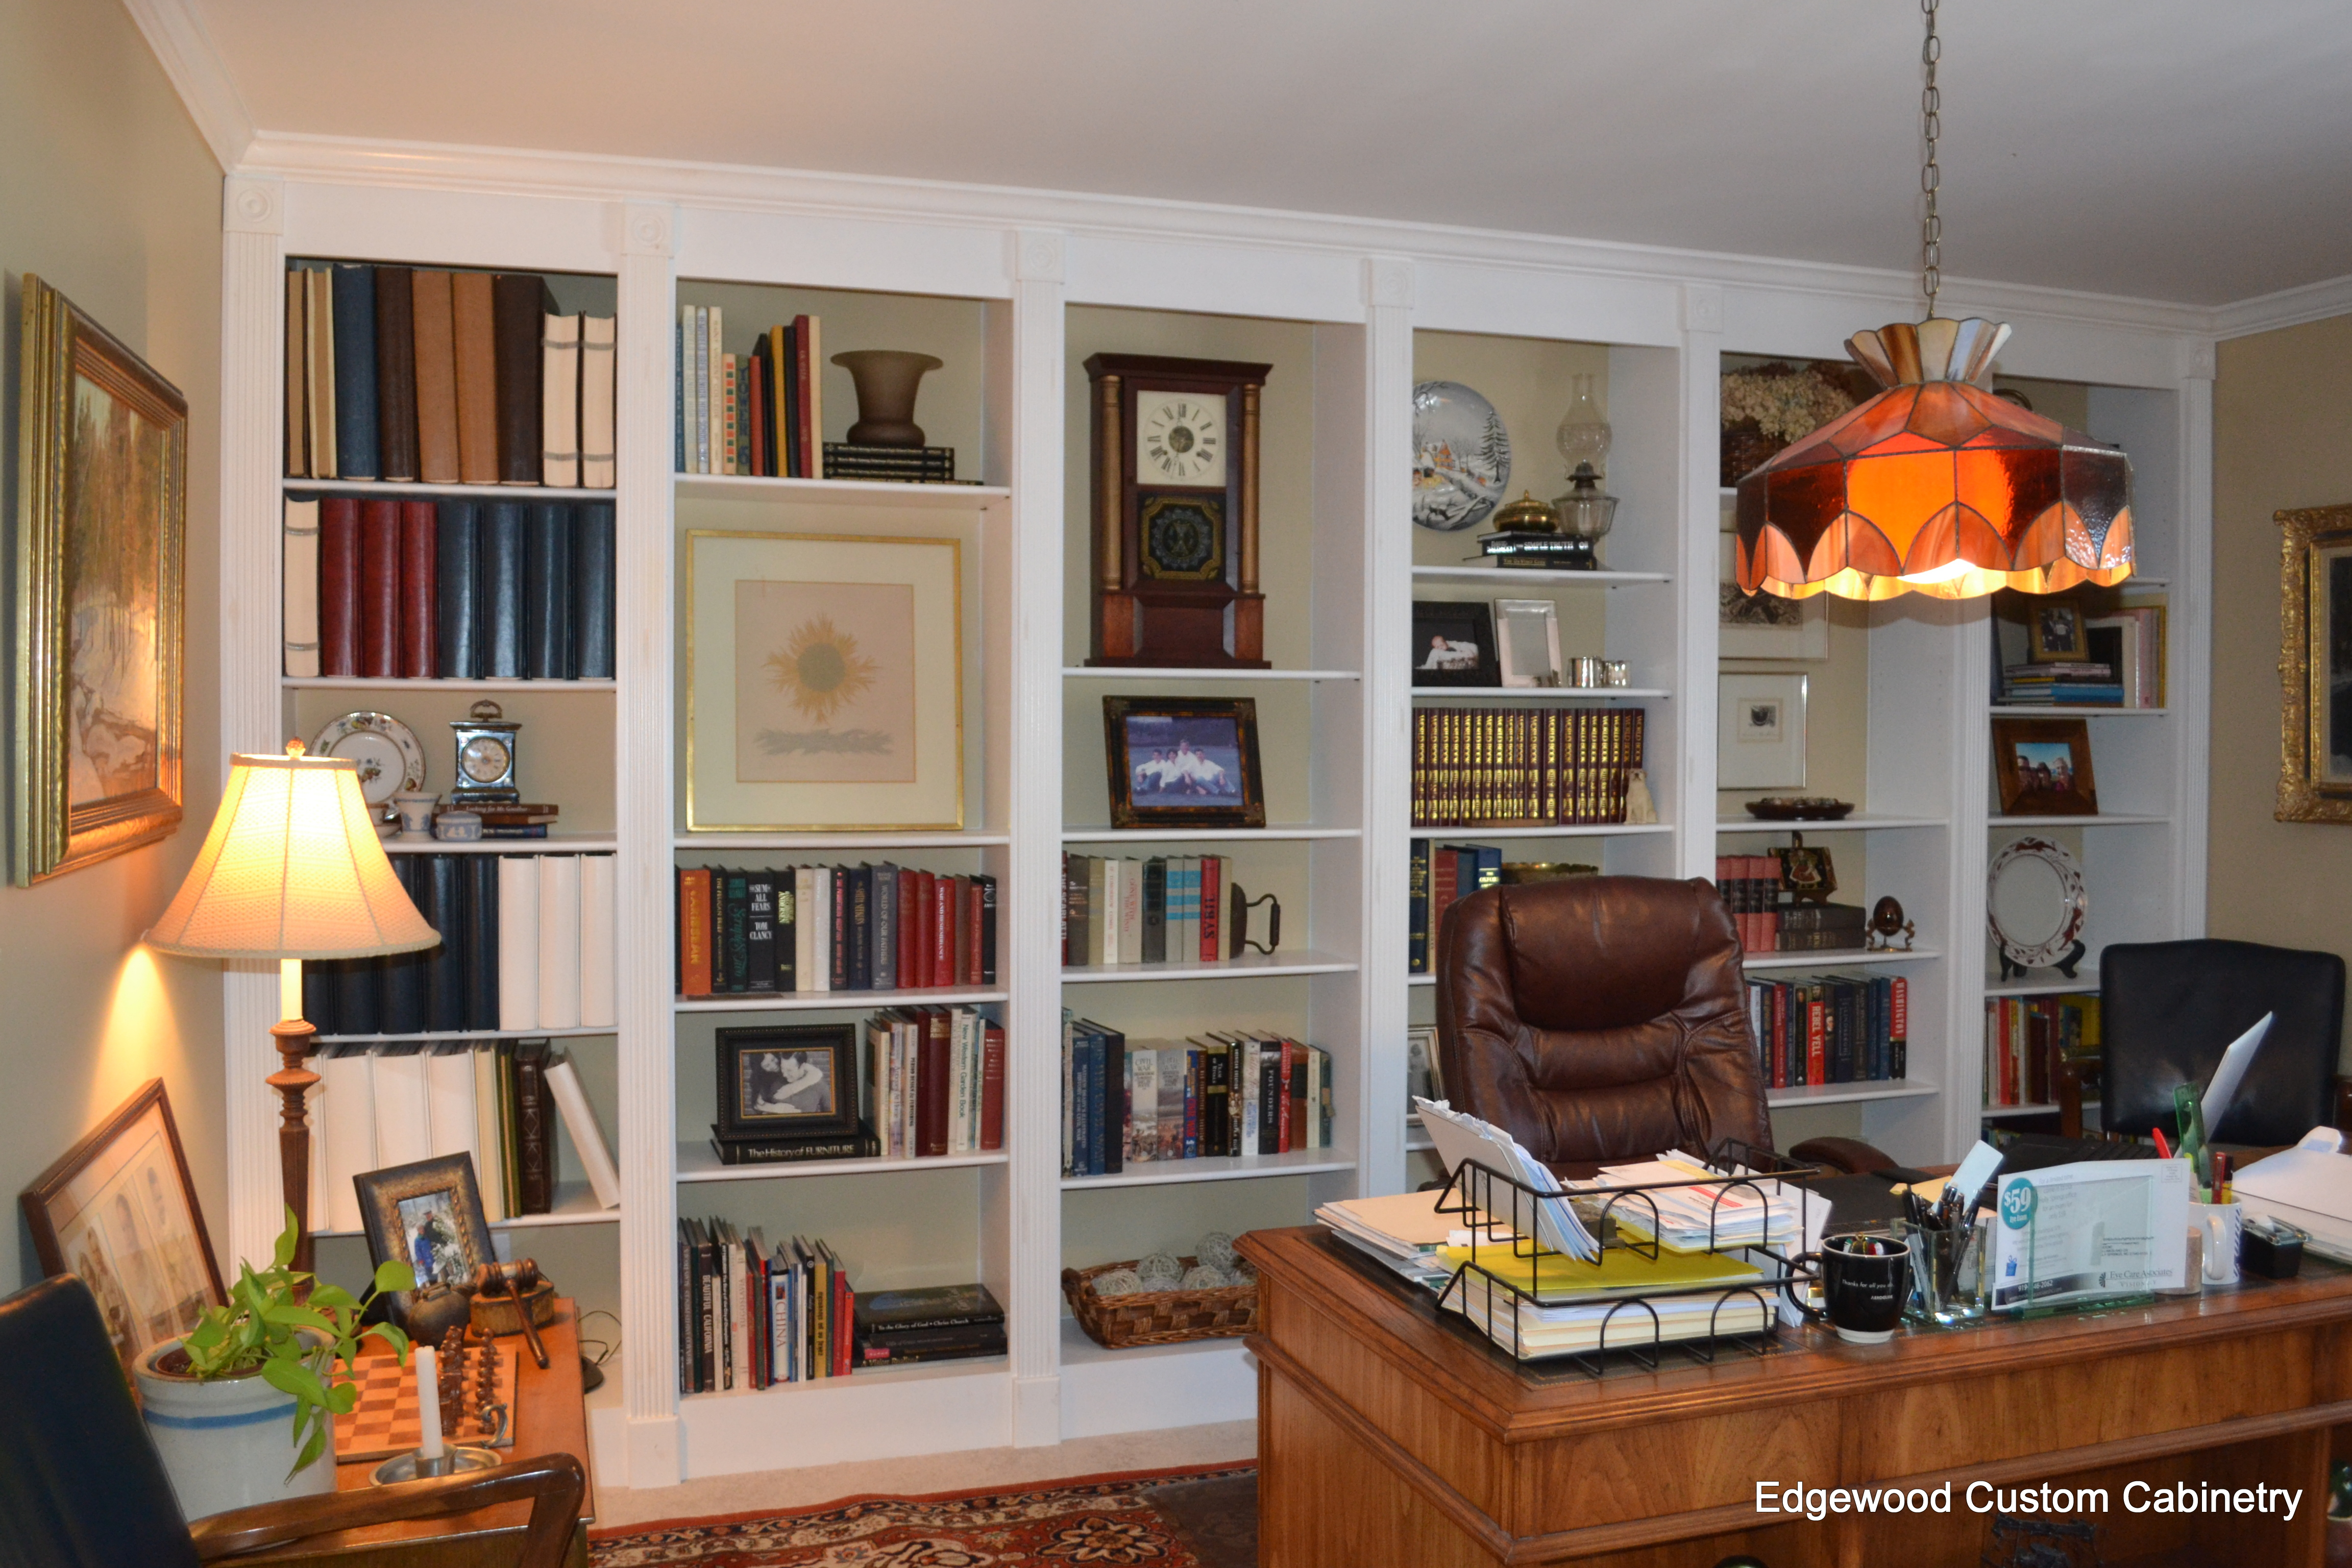 home office-edgewood cabinetry